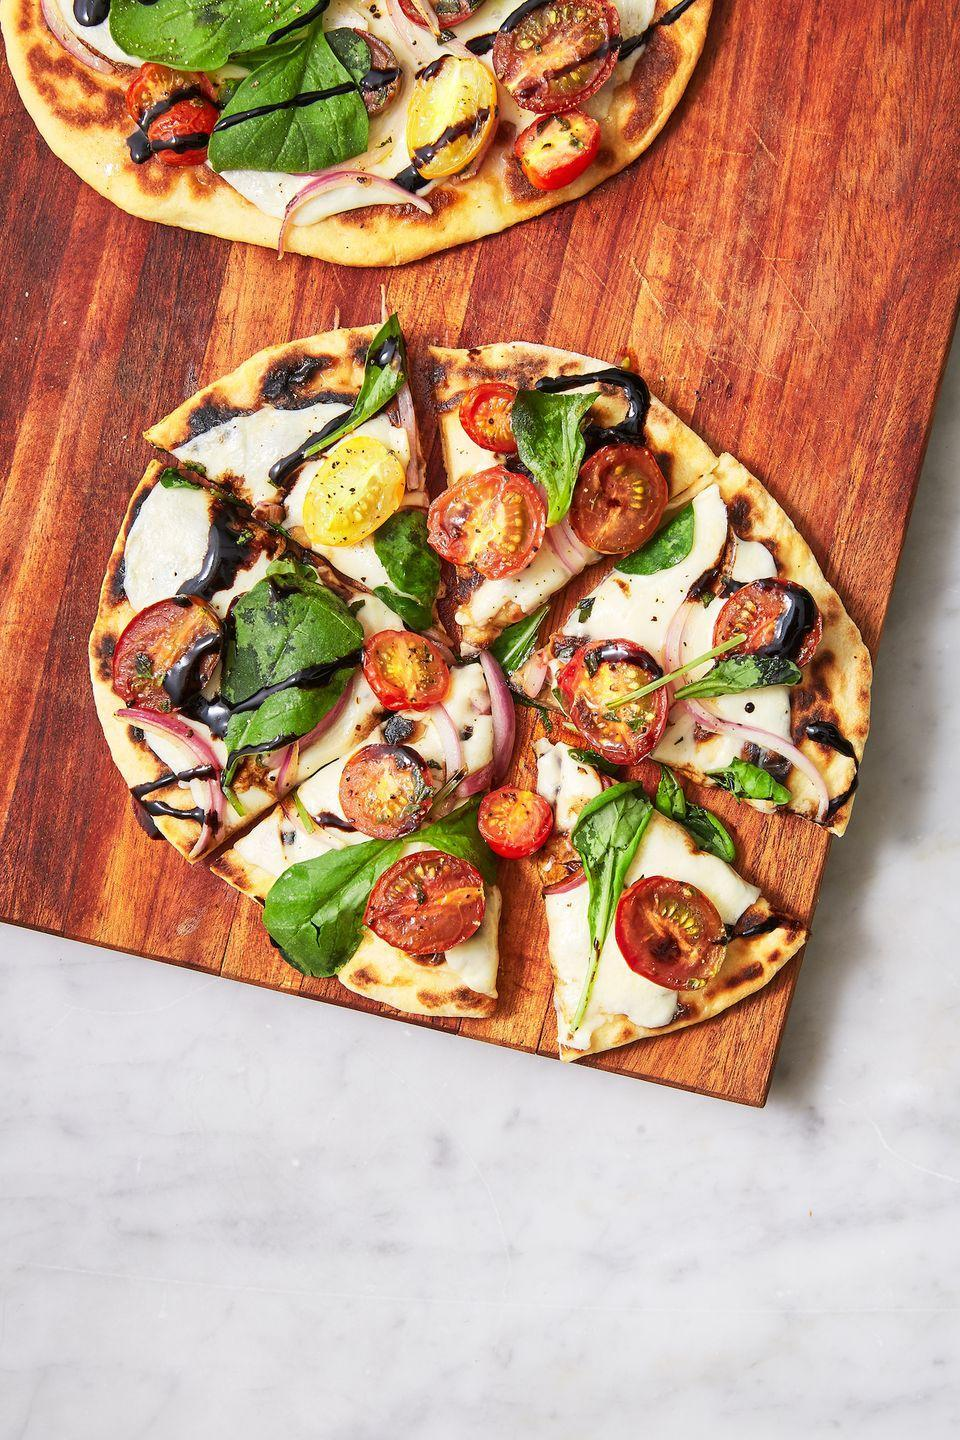 "<p>That balsamic glaze is rocking our world. </p><p>Get the recipe from <a href=""https://www.delish.com/cooking/recipe-ideas/a27794172/easy-flatbread-pizza-recipe/"" rel=""nofollow noopener"" target=""_blank"" data-ylk=""slk:Delish"" class=""link rapid-noclick-resp"">Delish</a>.</p>"